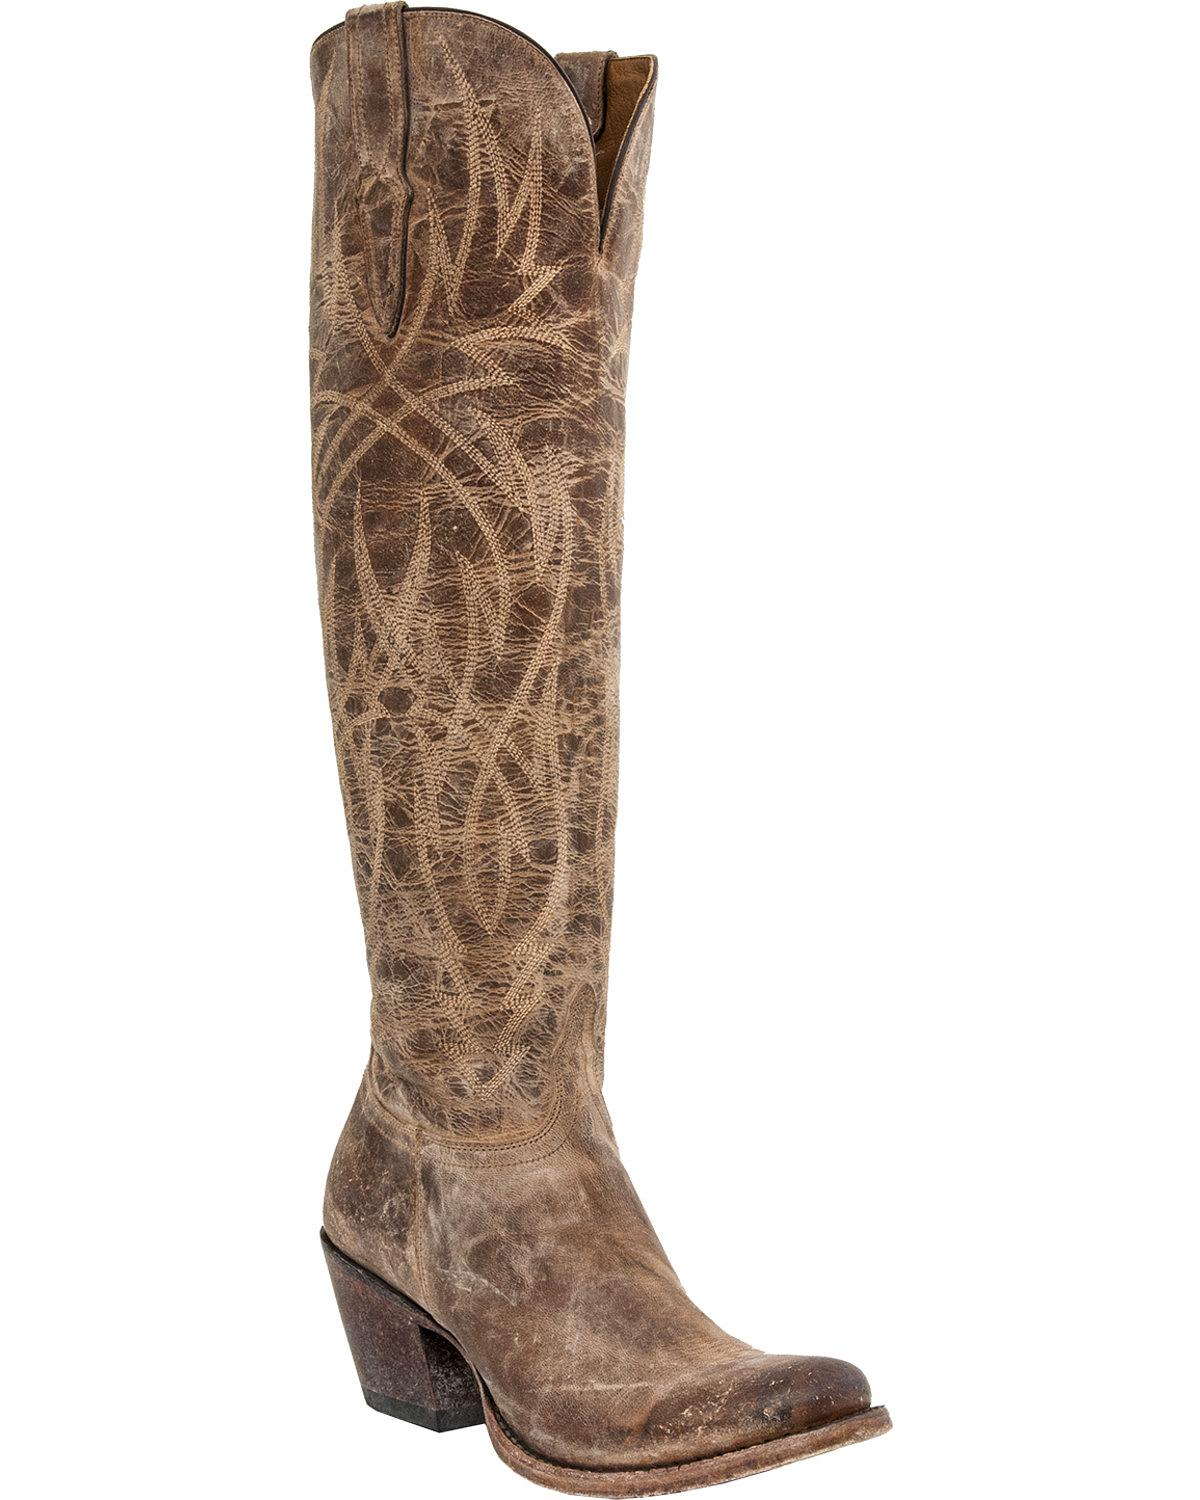 Unique Lucchese Tooled Petal Cowboy Boots (For Women) 9300Y